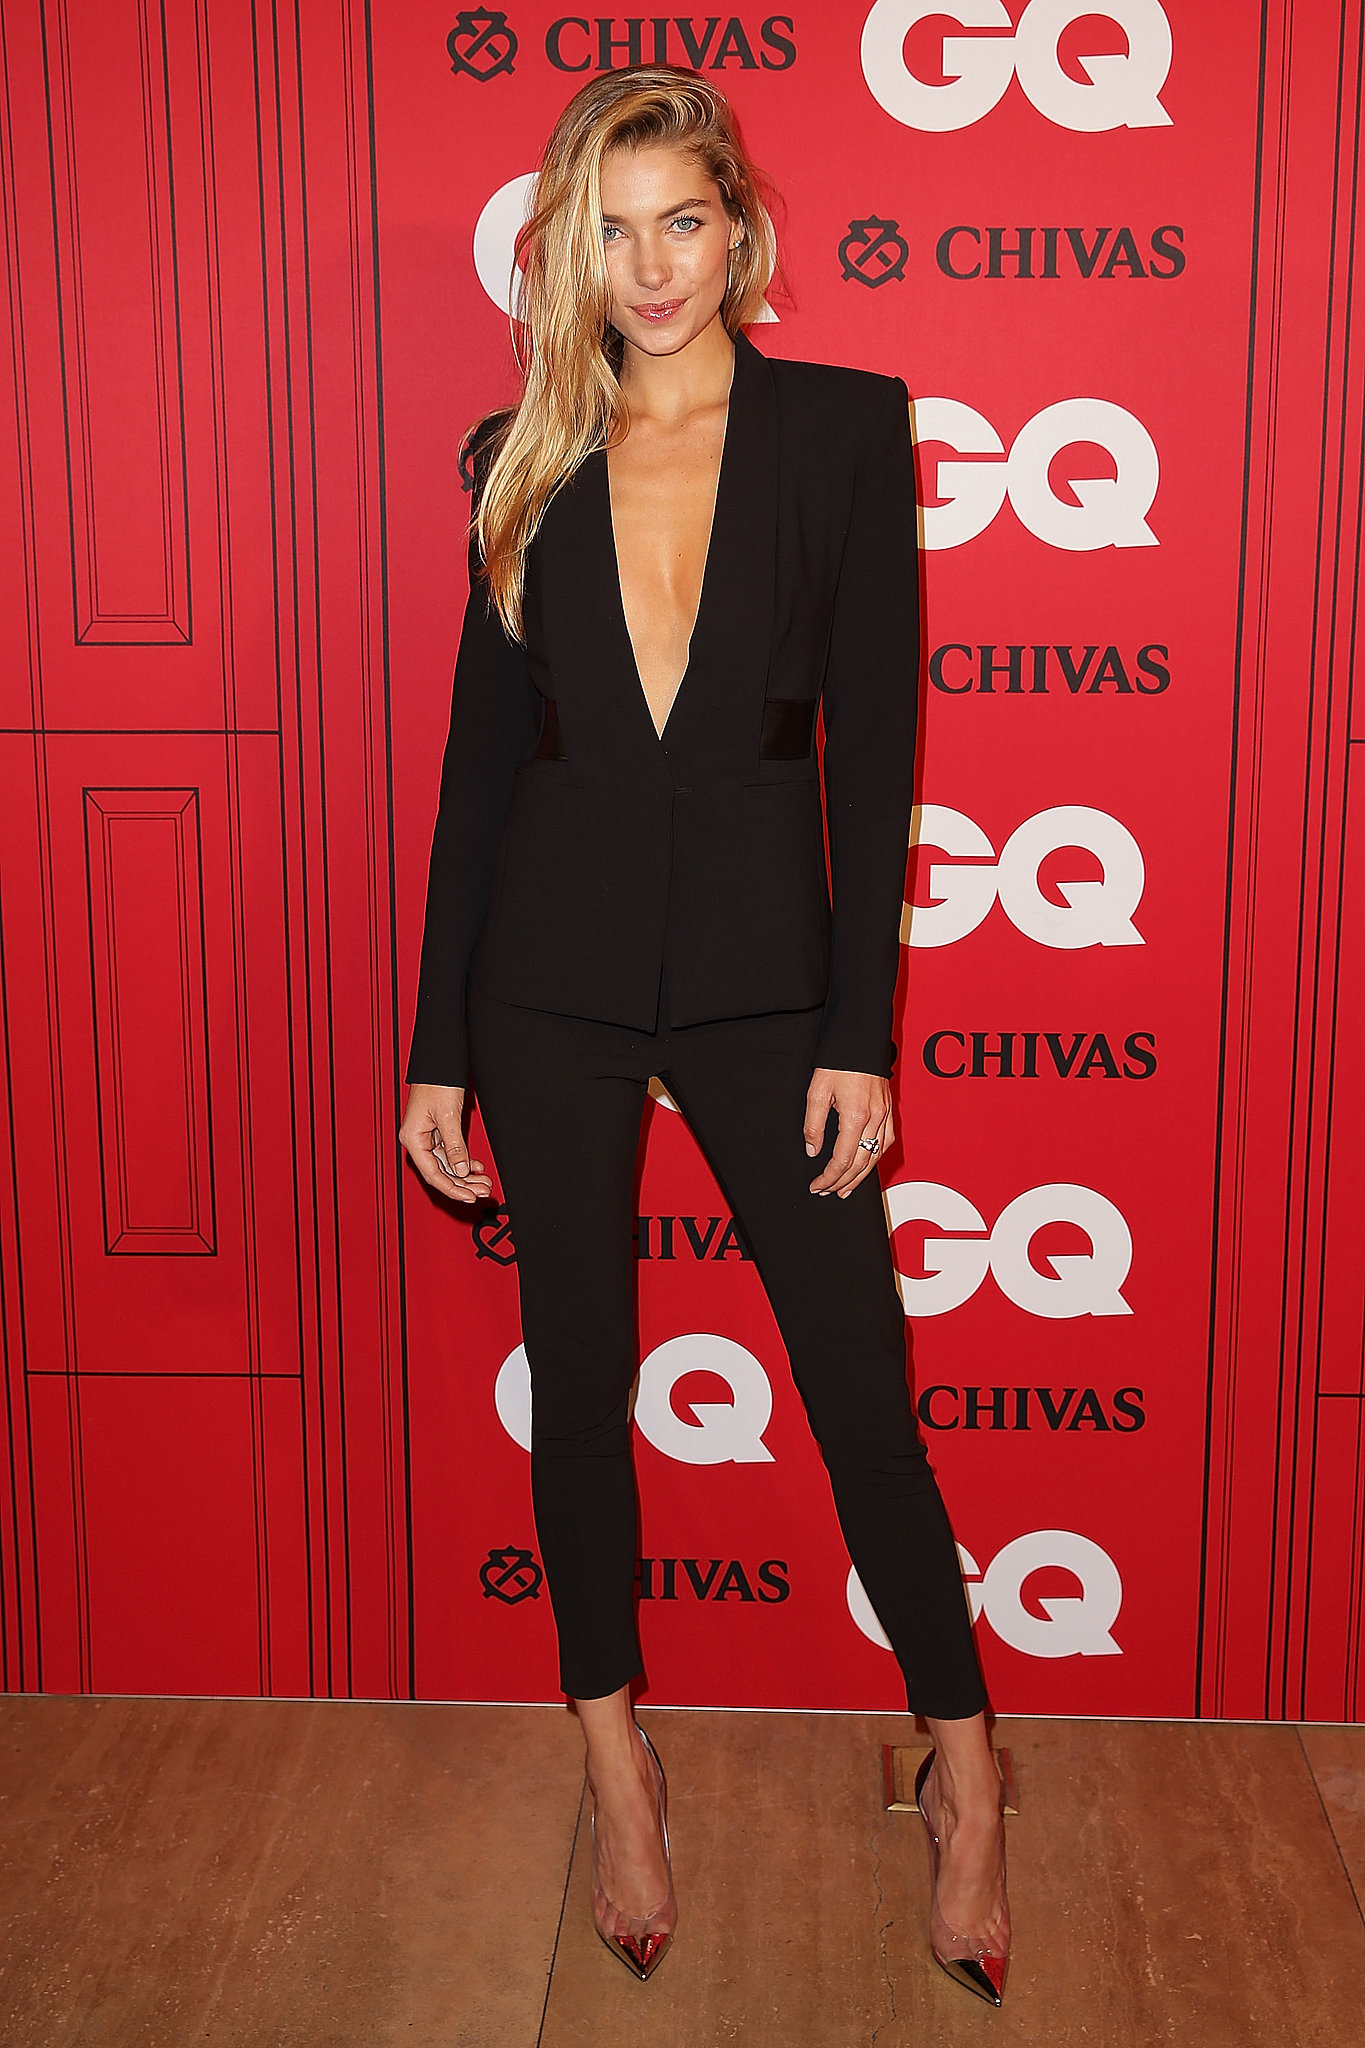 Jessica Hart at the GQ Men of the Year Awards in Sydney.